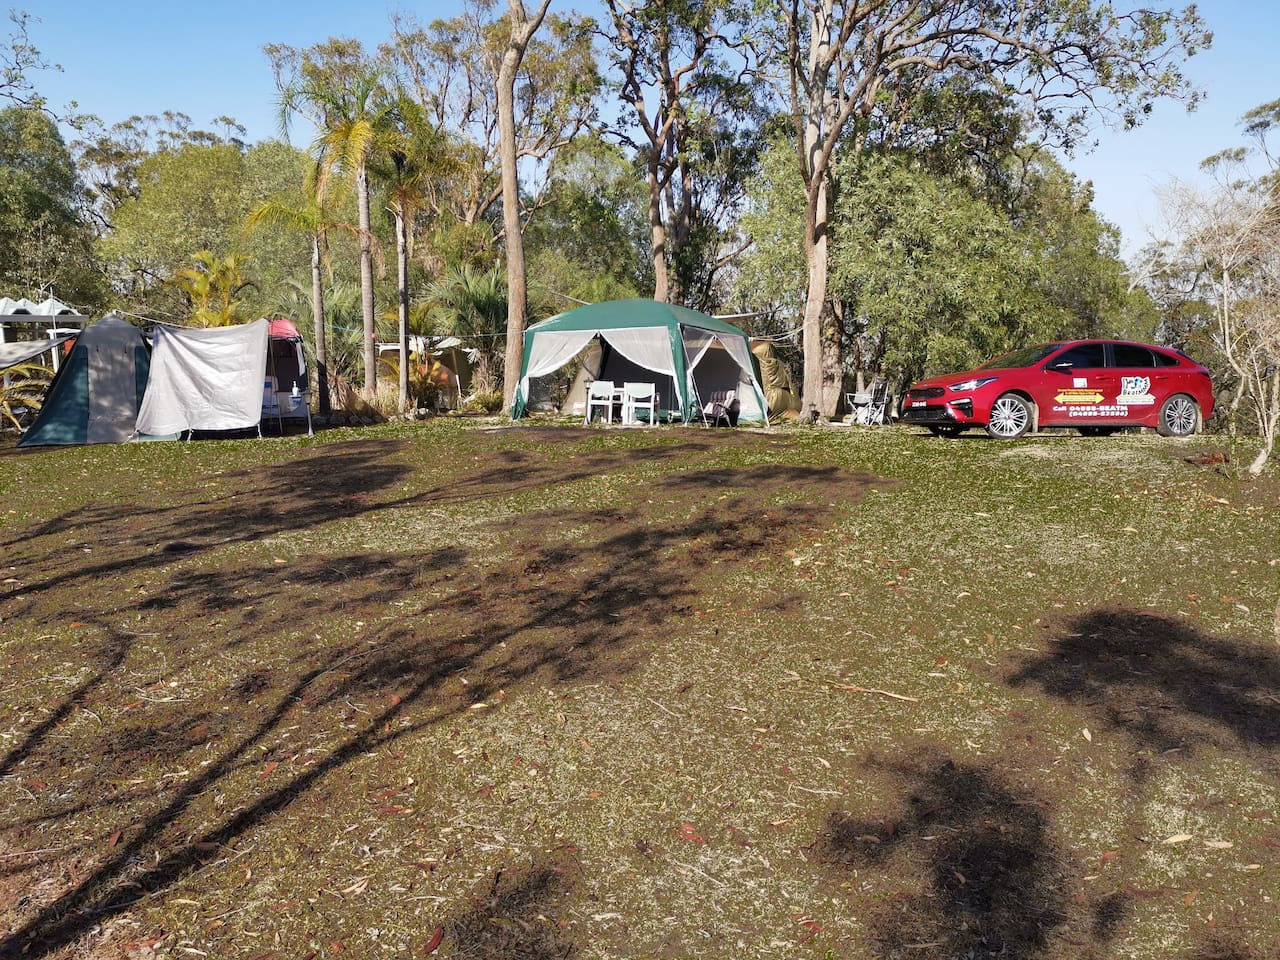 Expanded Facilities at Campground with additional 2 Man Tent, Large Pergola & extra Shower Tent. However, due to extreme drought the grass is not as green as shown here